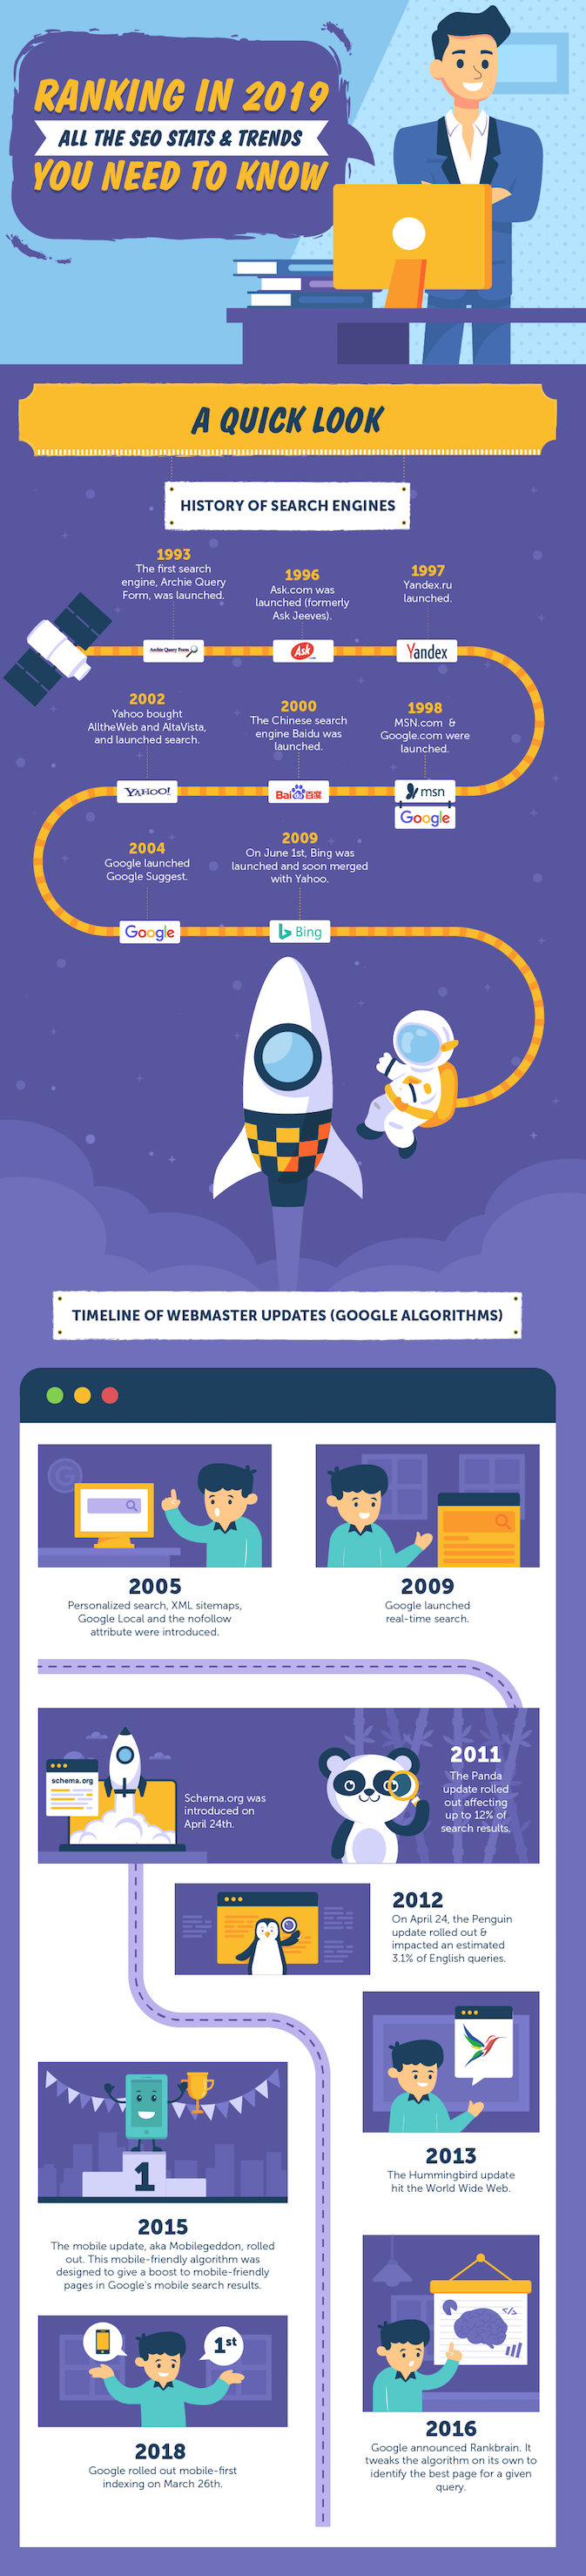 Explore 2019's latest SEO statistics by SEO Tribunal. From algorithm updates to current and future trends; learn all there is to know about SEO this year!